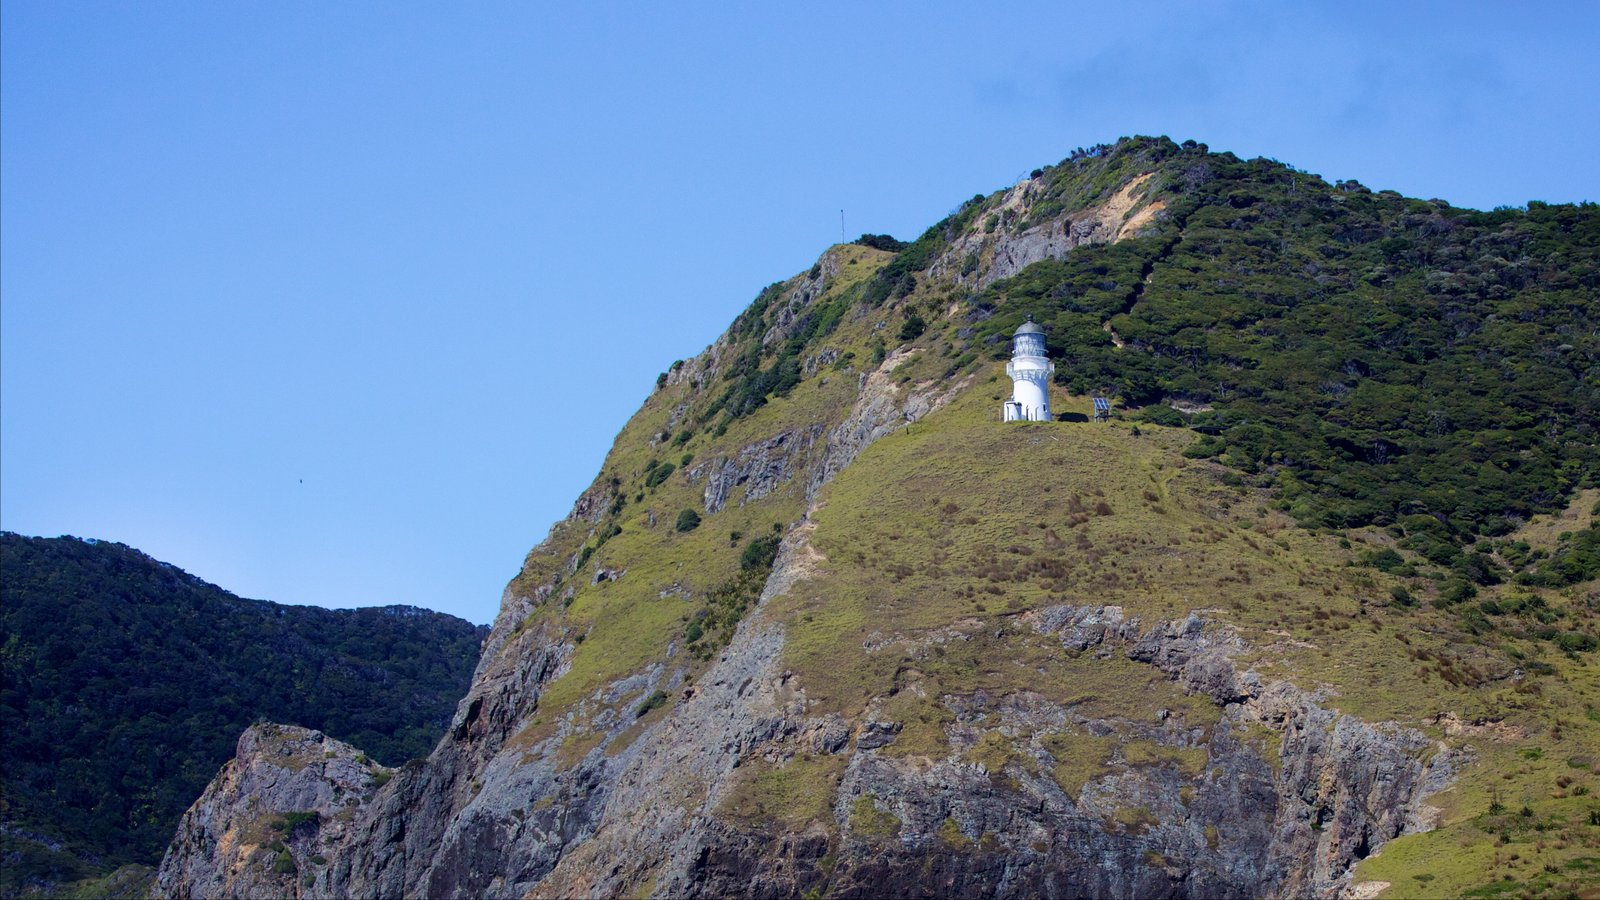 Cape Brett Lighthouse ofreciendo un faro y costa escarpada